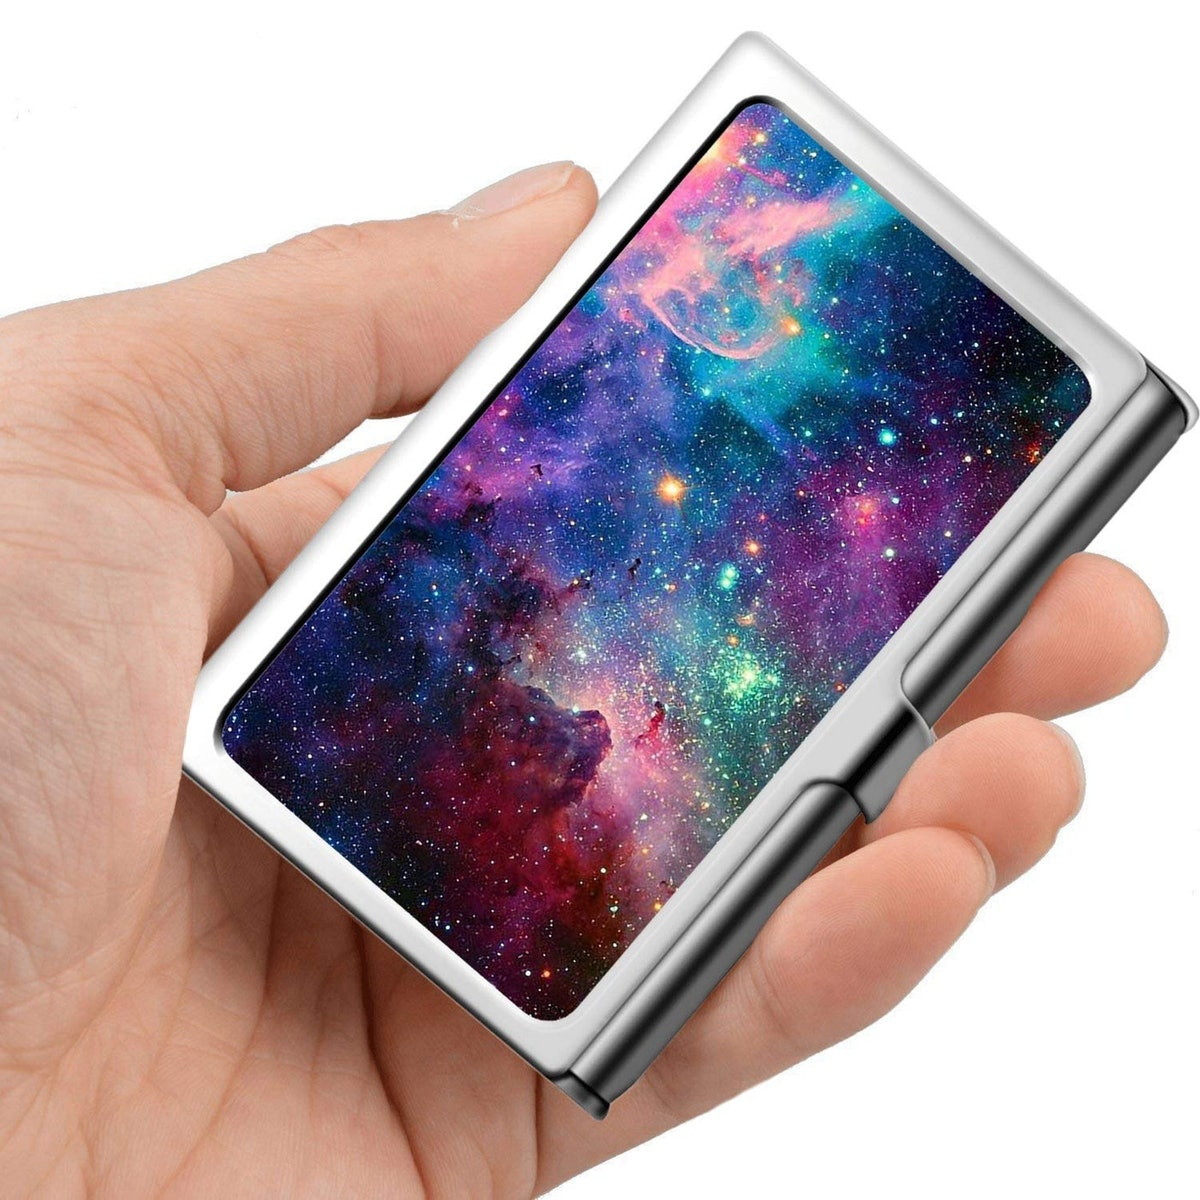 YueNew Stainless Steel Business Card Holder